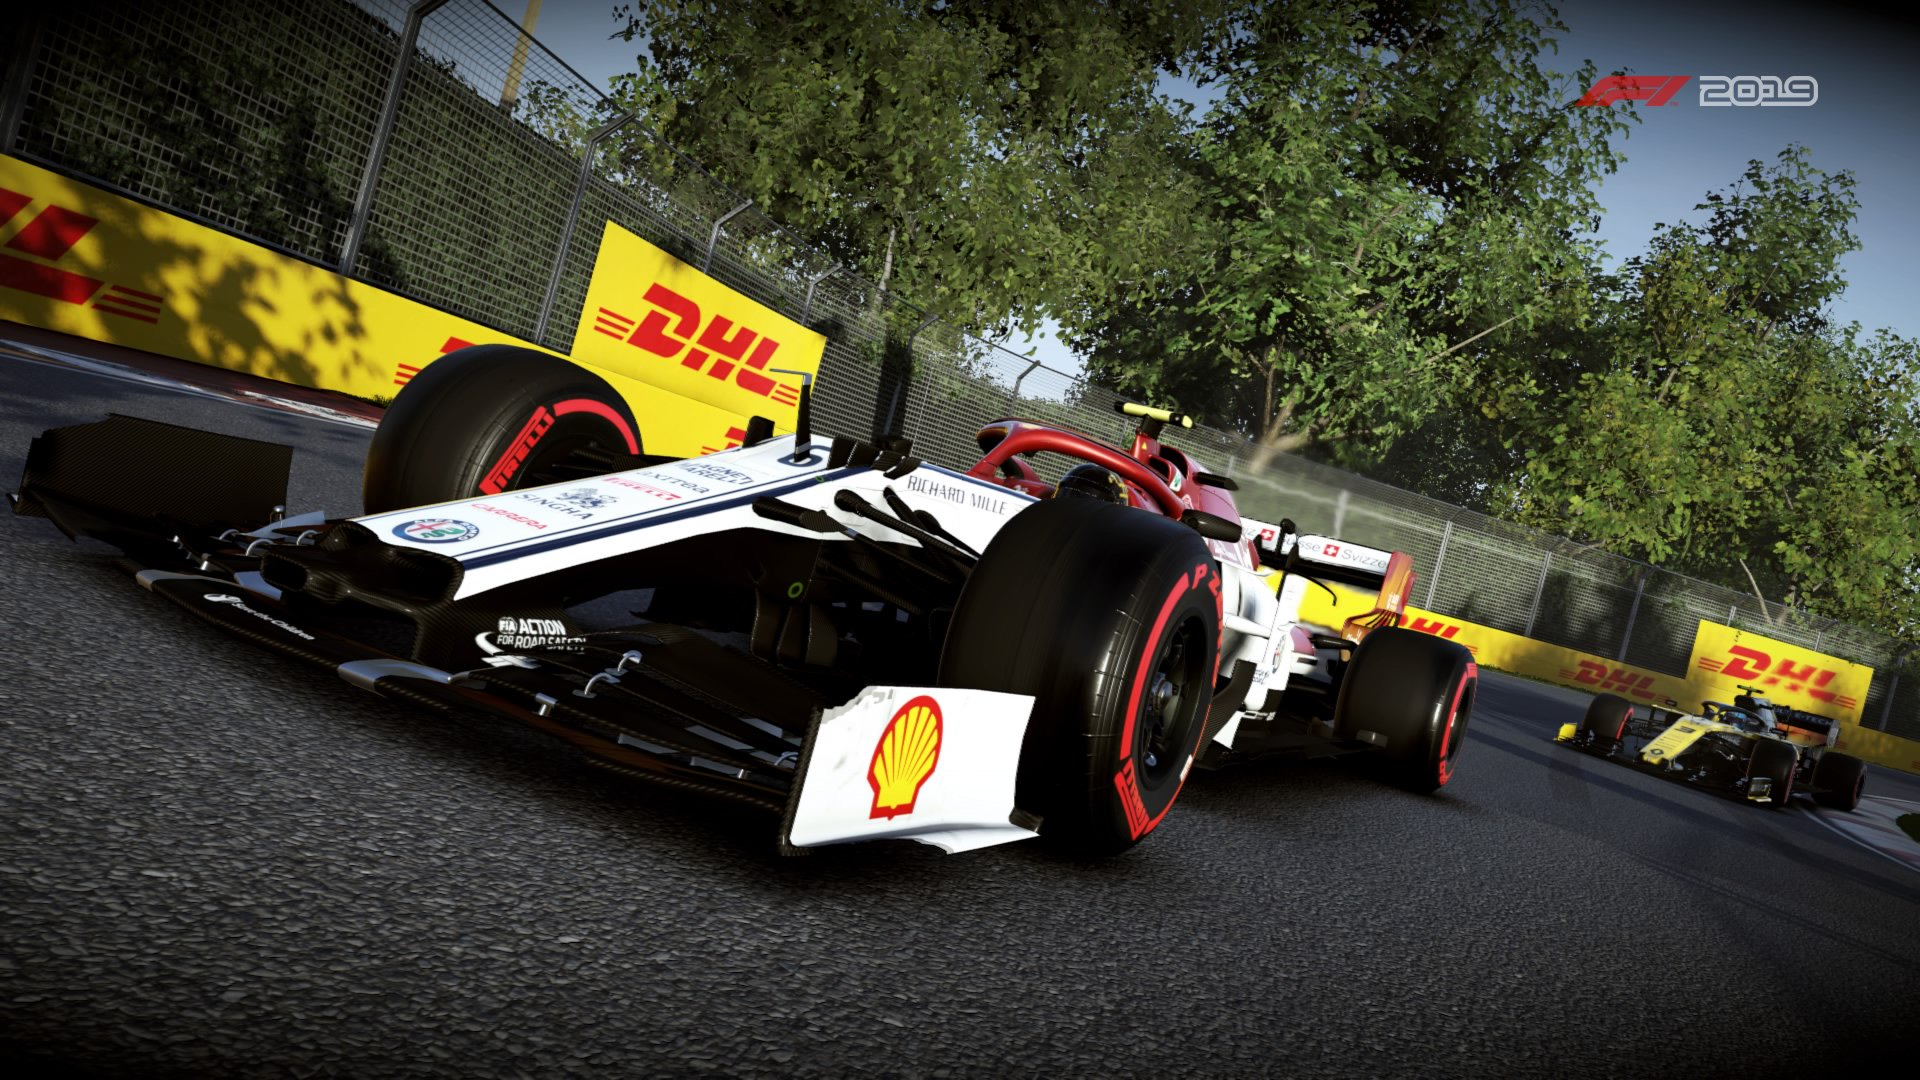 An F1 race car zooms around a corner ahead of a close rival